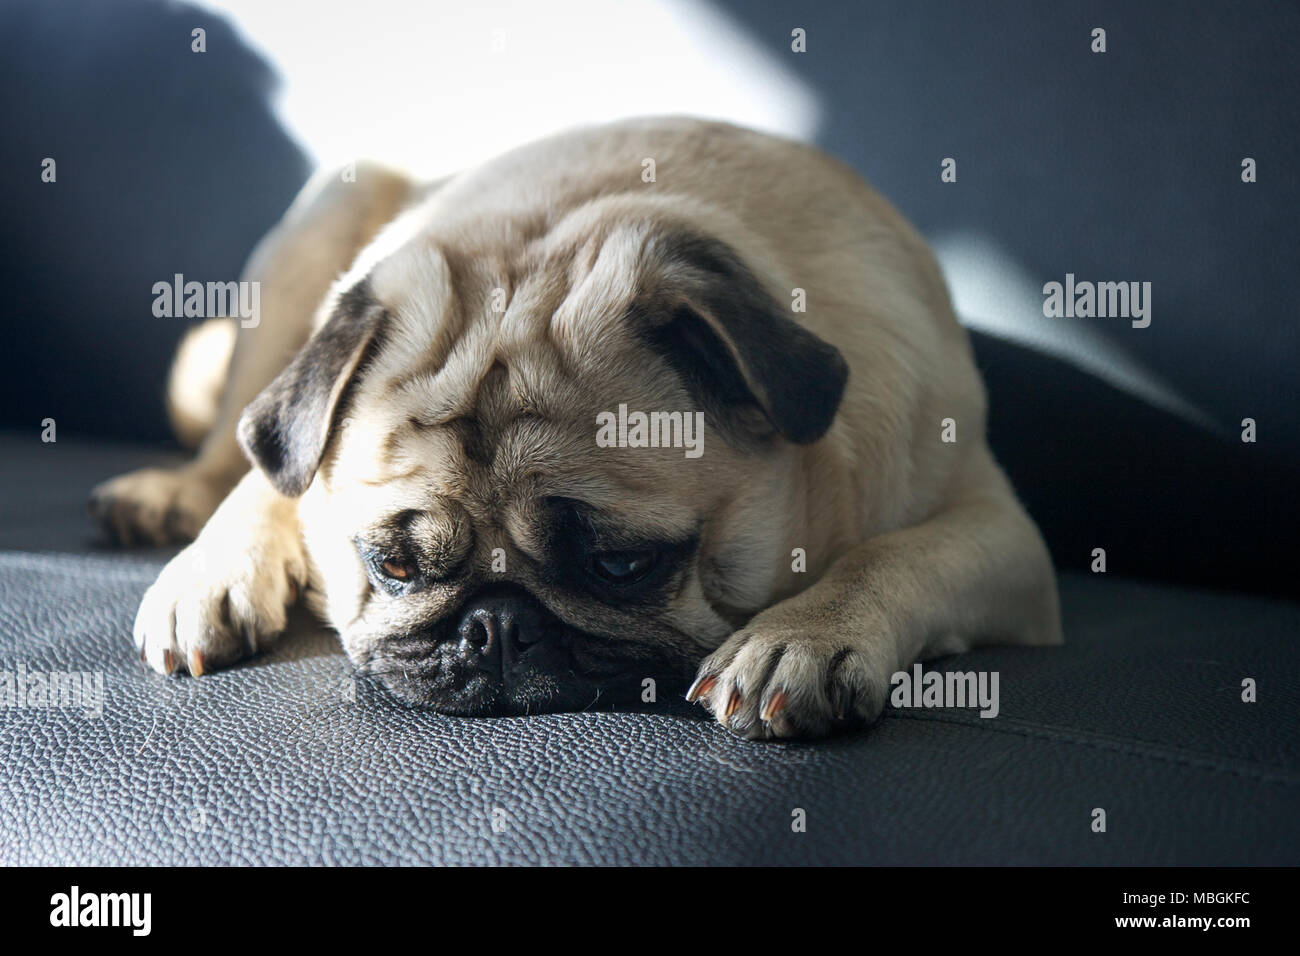 Miserable Pug on the Couch - Stock Image